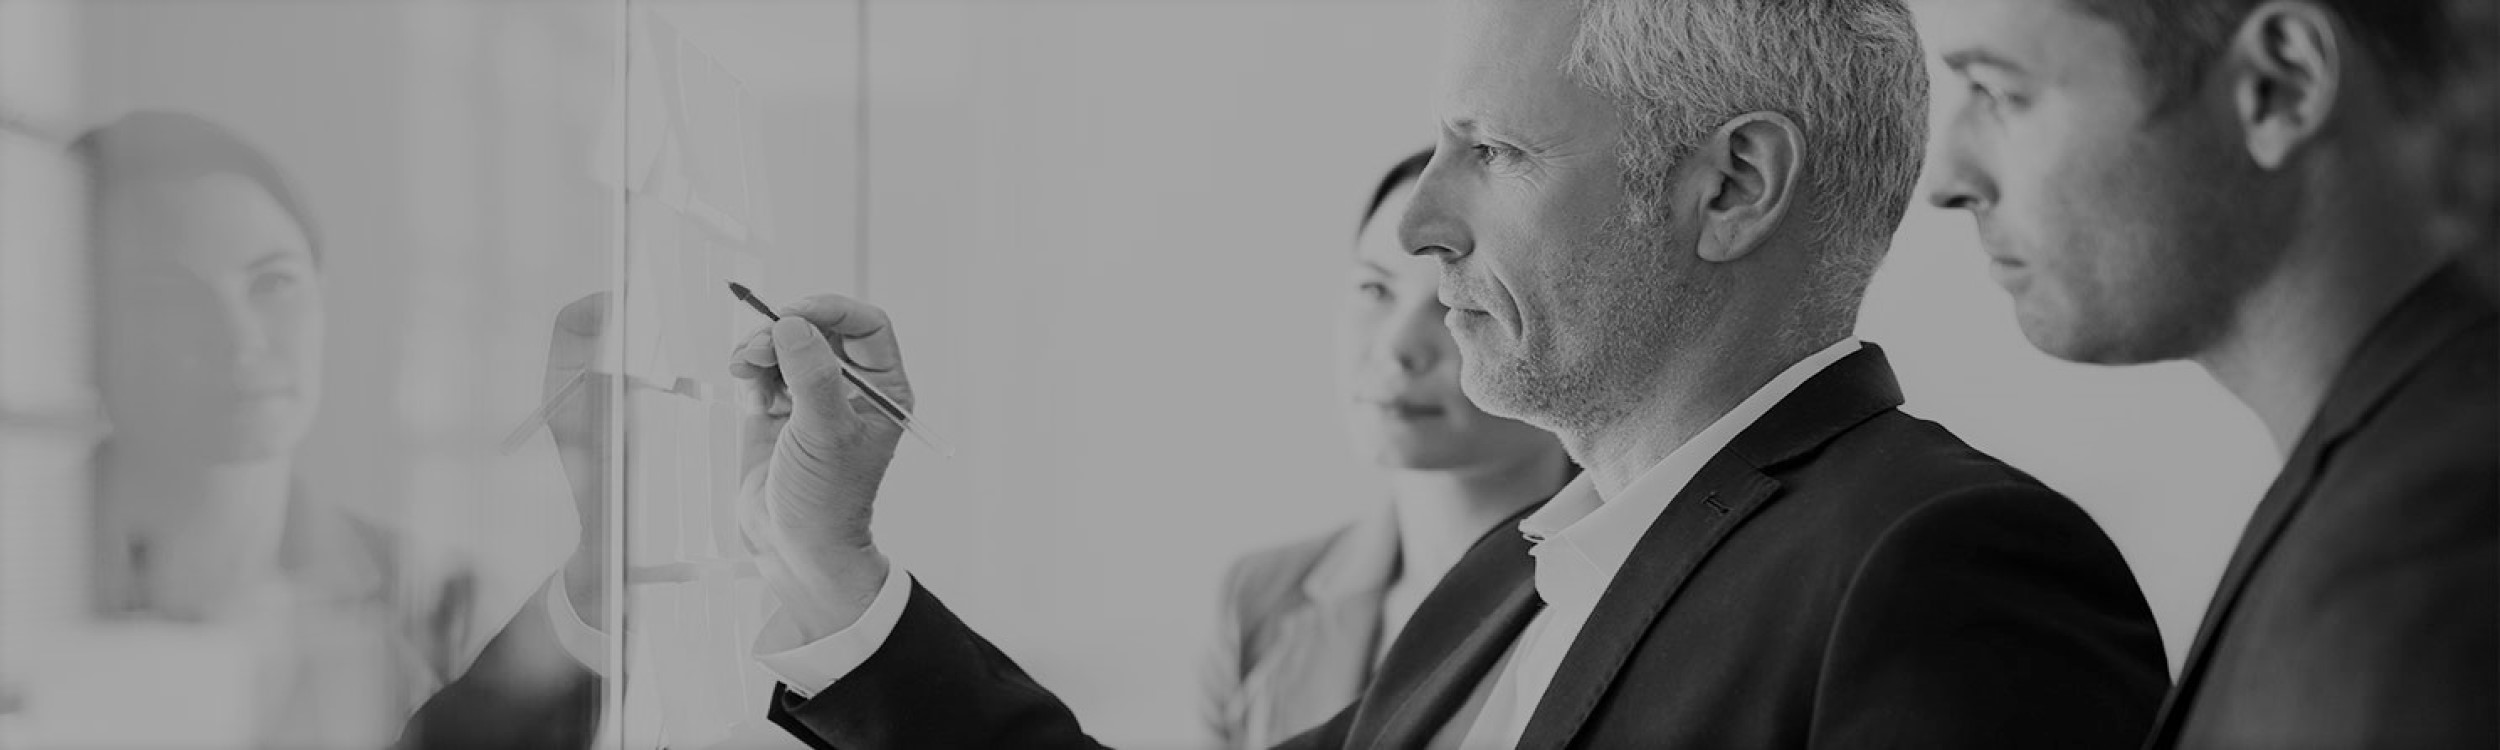 Our approach to solving business problems is to work closely with our clients to provide a clear definition of requirements defining the functional and compliance needs of the organisation.